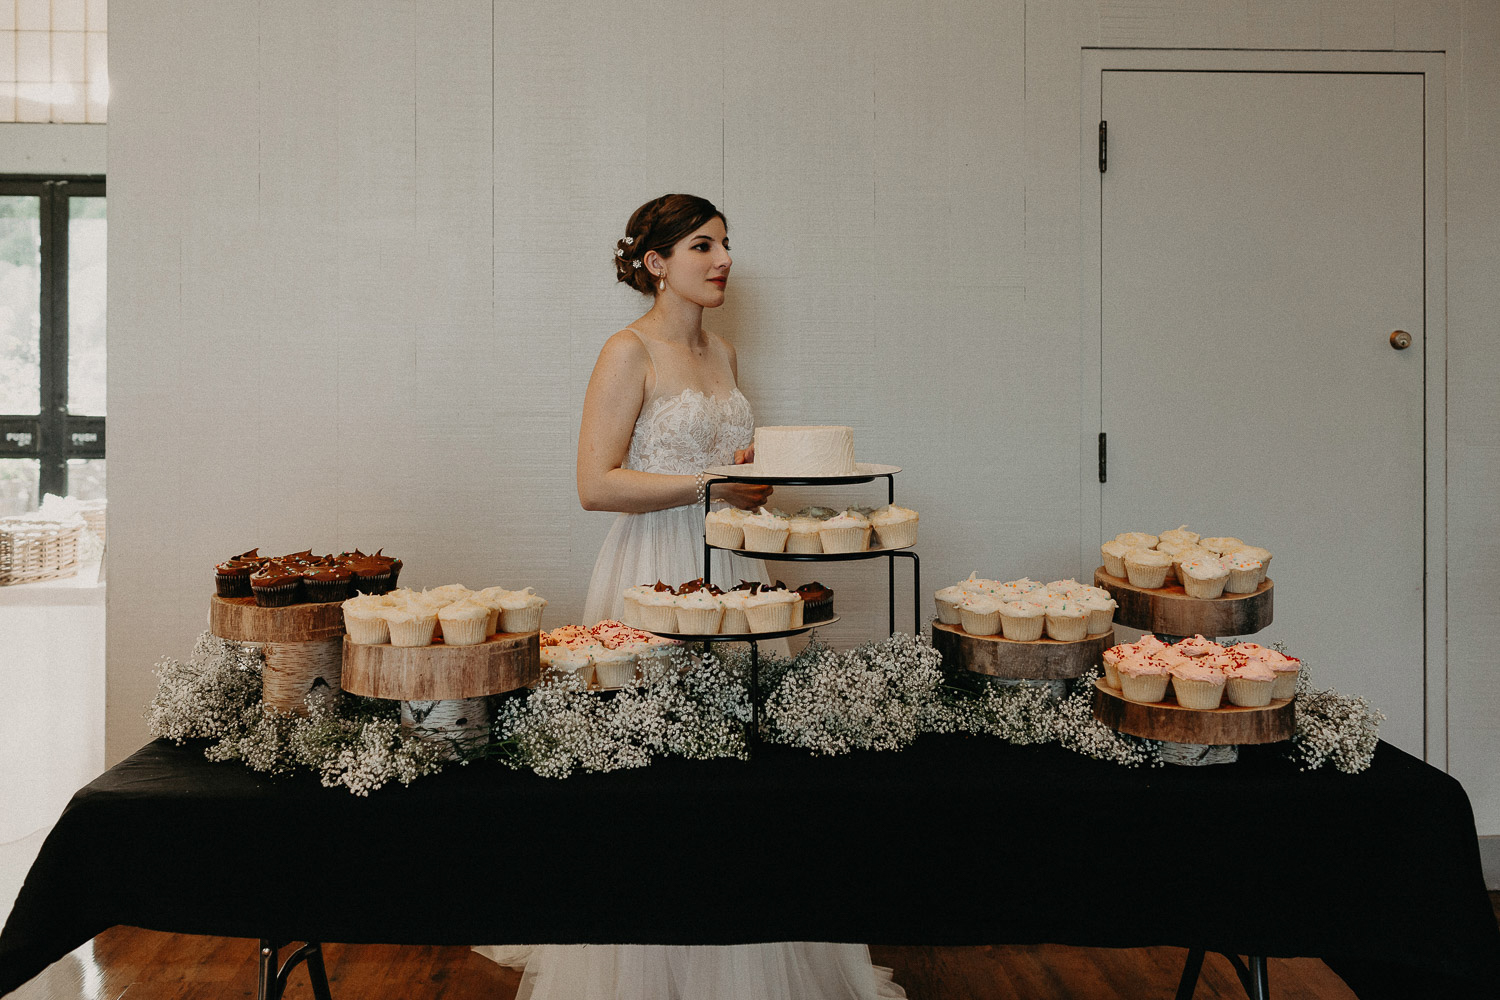 Image of bride and wedding cakes